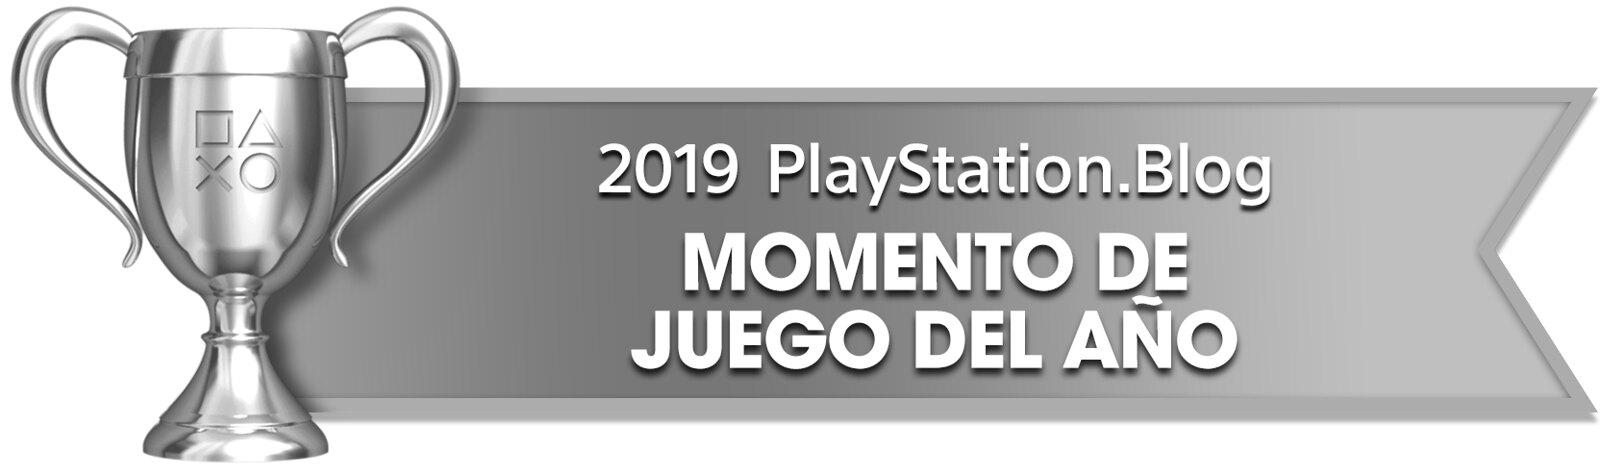 PS Blog Game of the Year 2019 - Gaming Moment of the Year - 3 - Silver